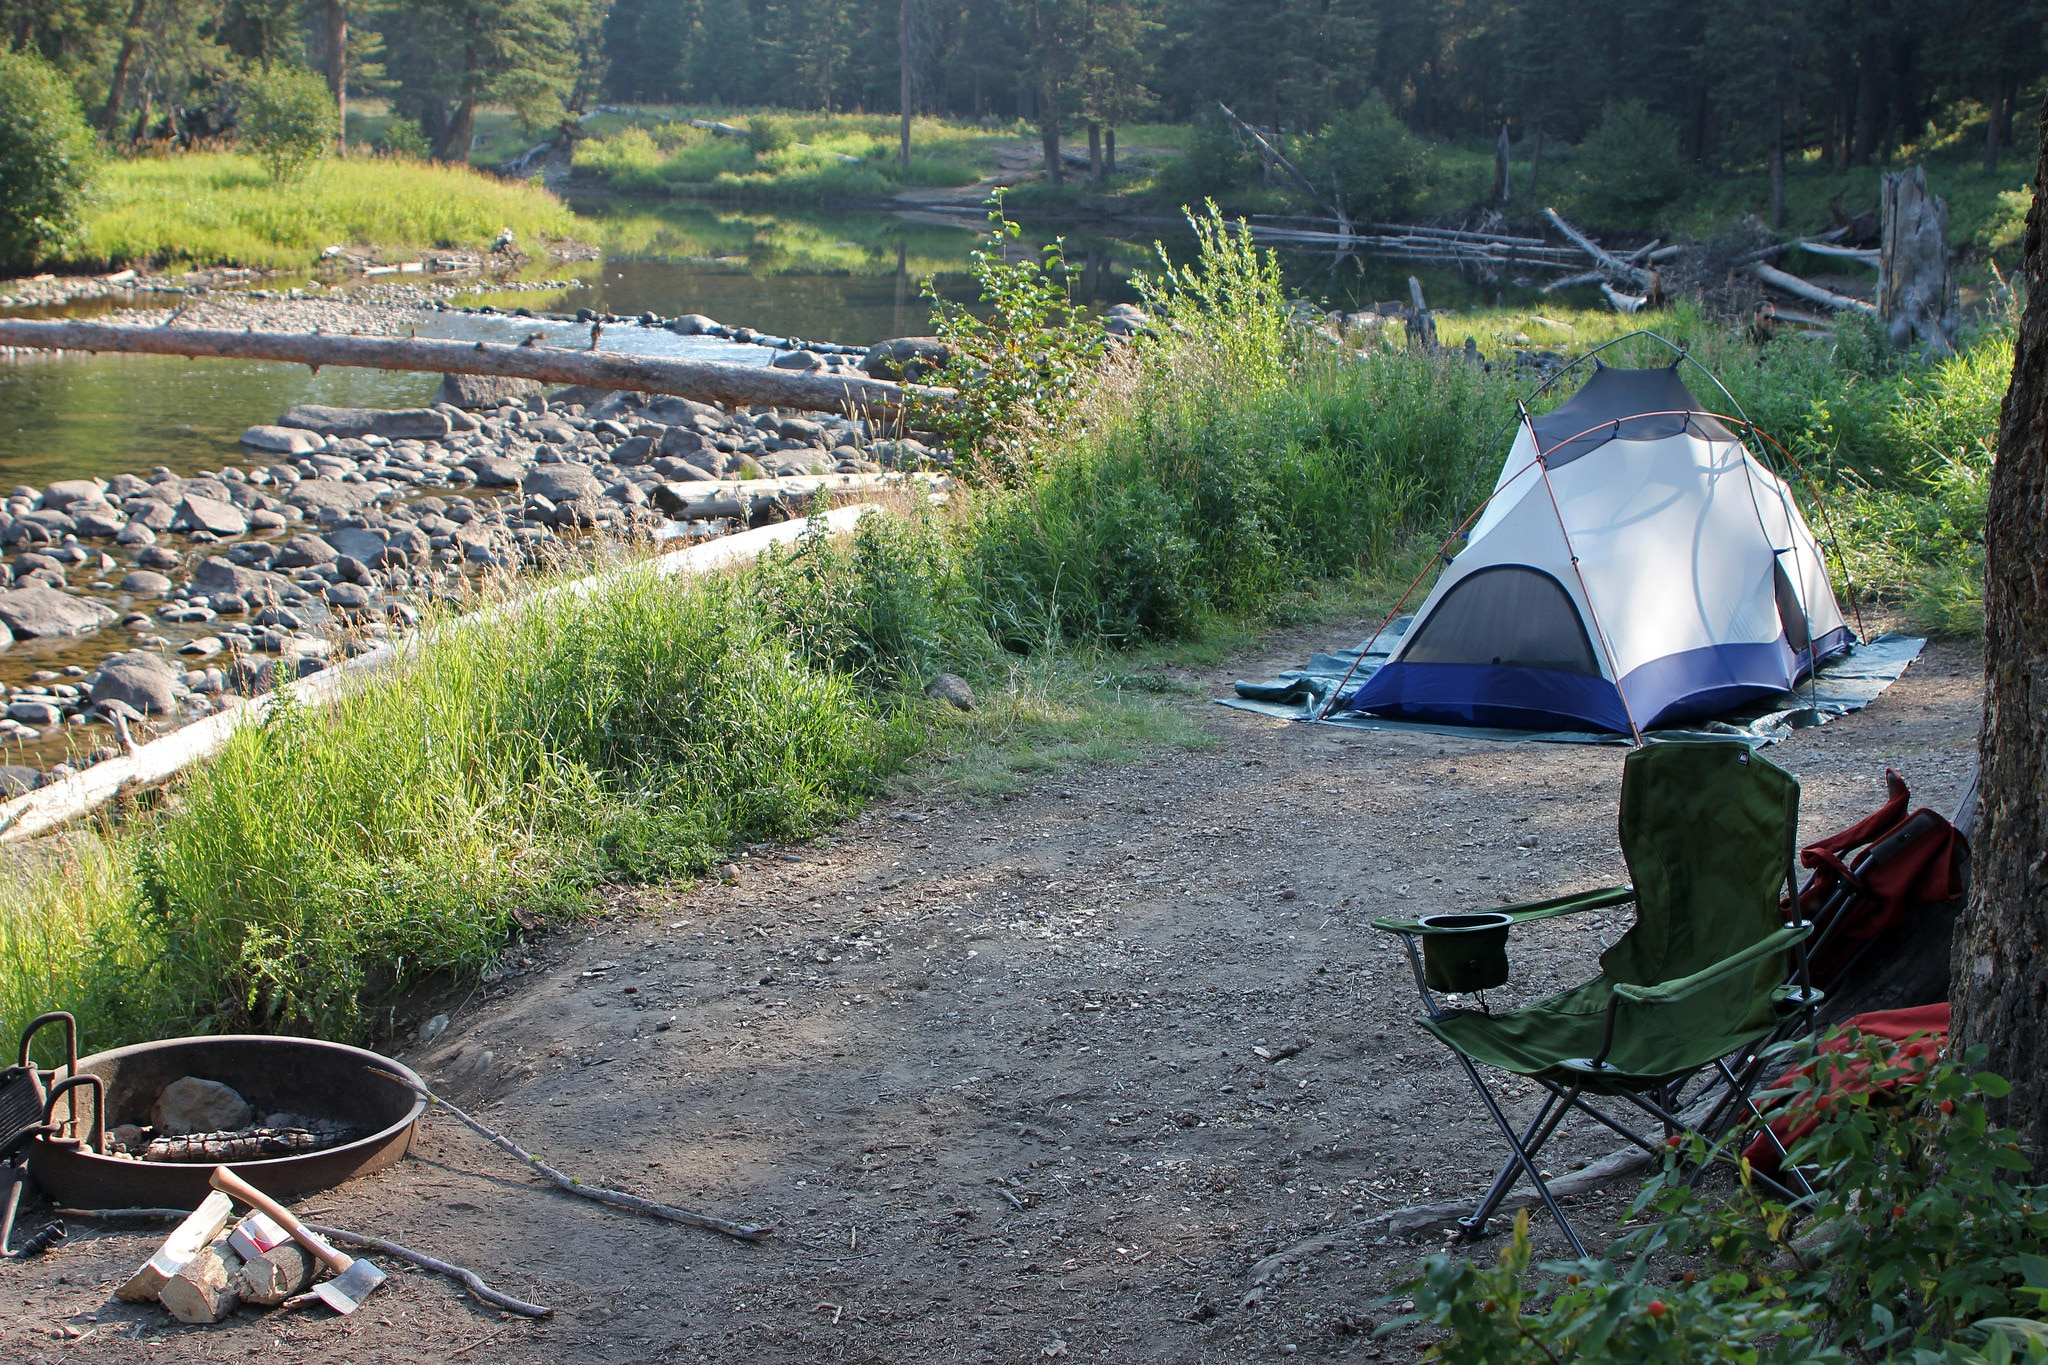 Front Country Campgrounds Like This Site At Slough Creek Merge The Beauty Of Park With